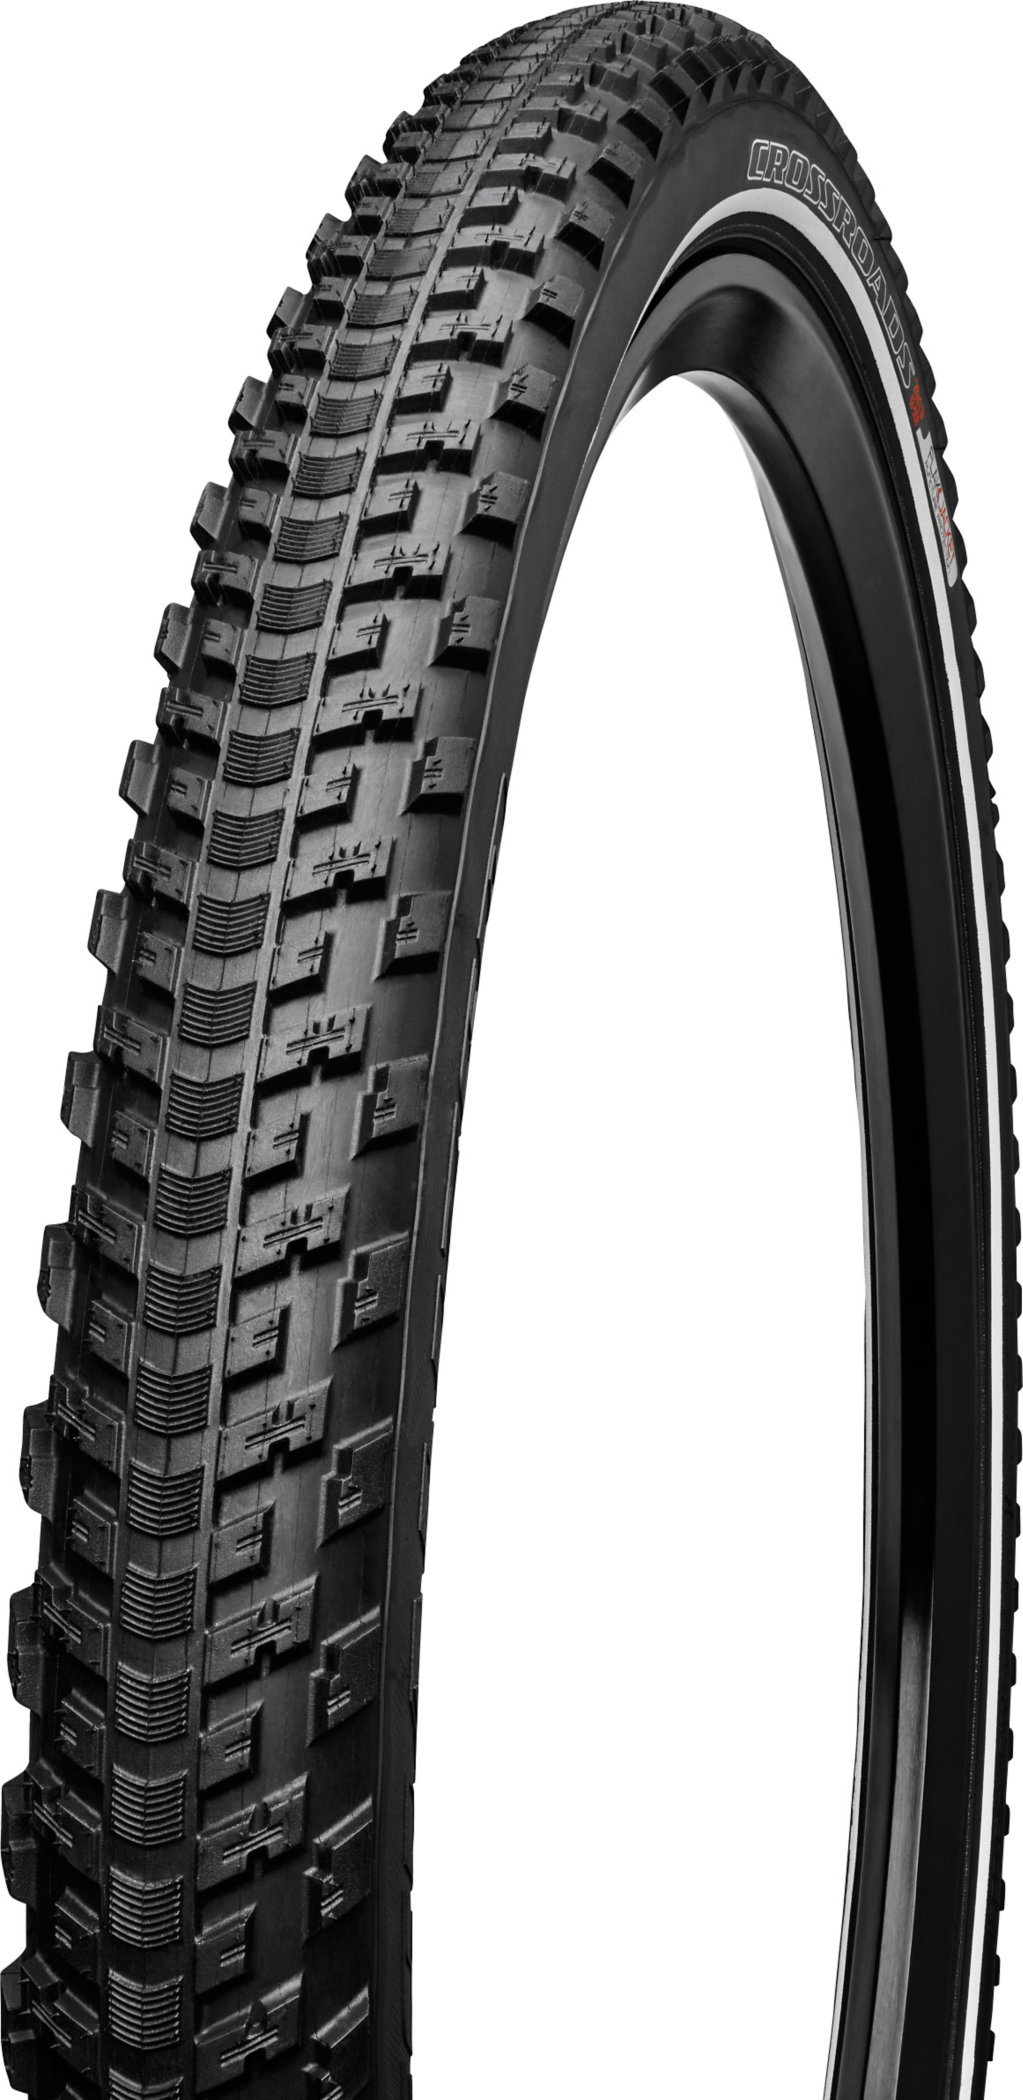 SPECIALIZED CROSSROADS REFLECT TIRE 650BX1.9 - SPECIALIZED CROSSROADS REFLECT TIRE 650BX1.9